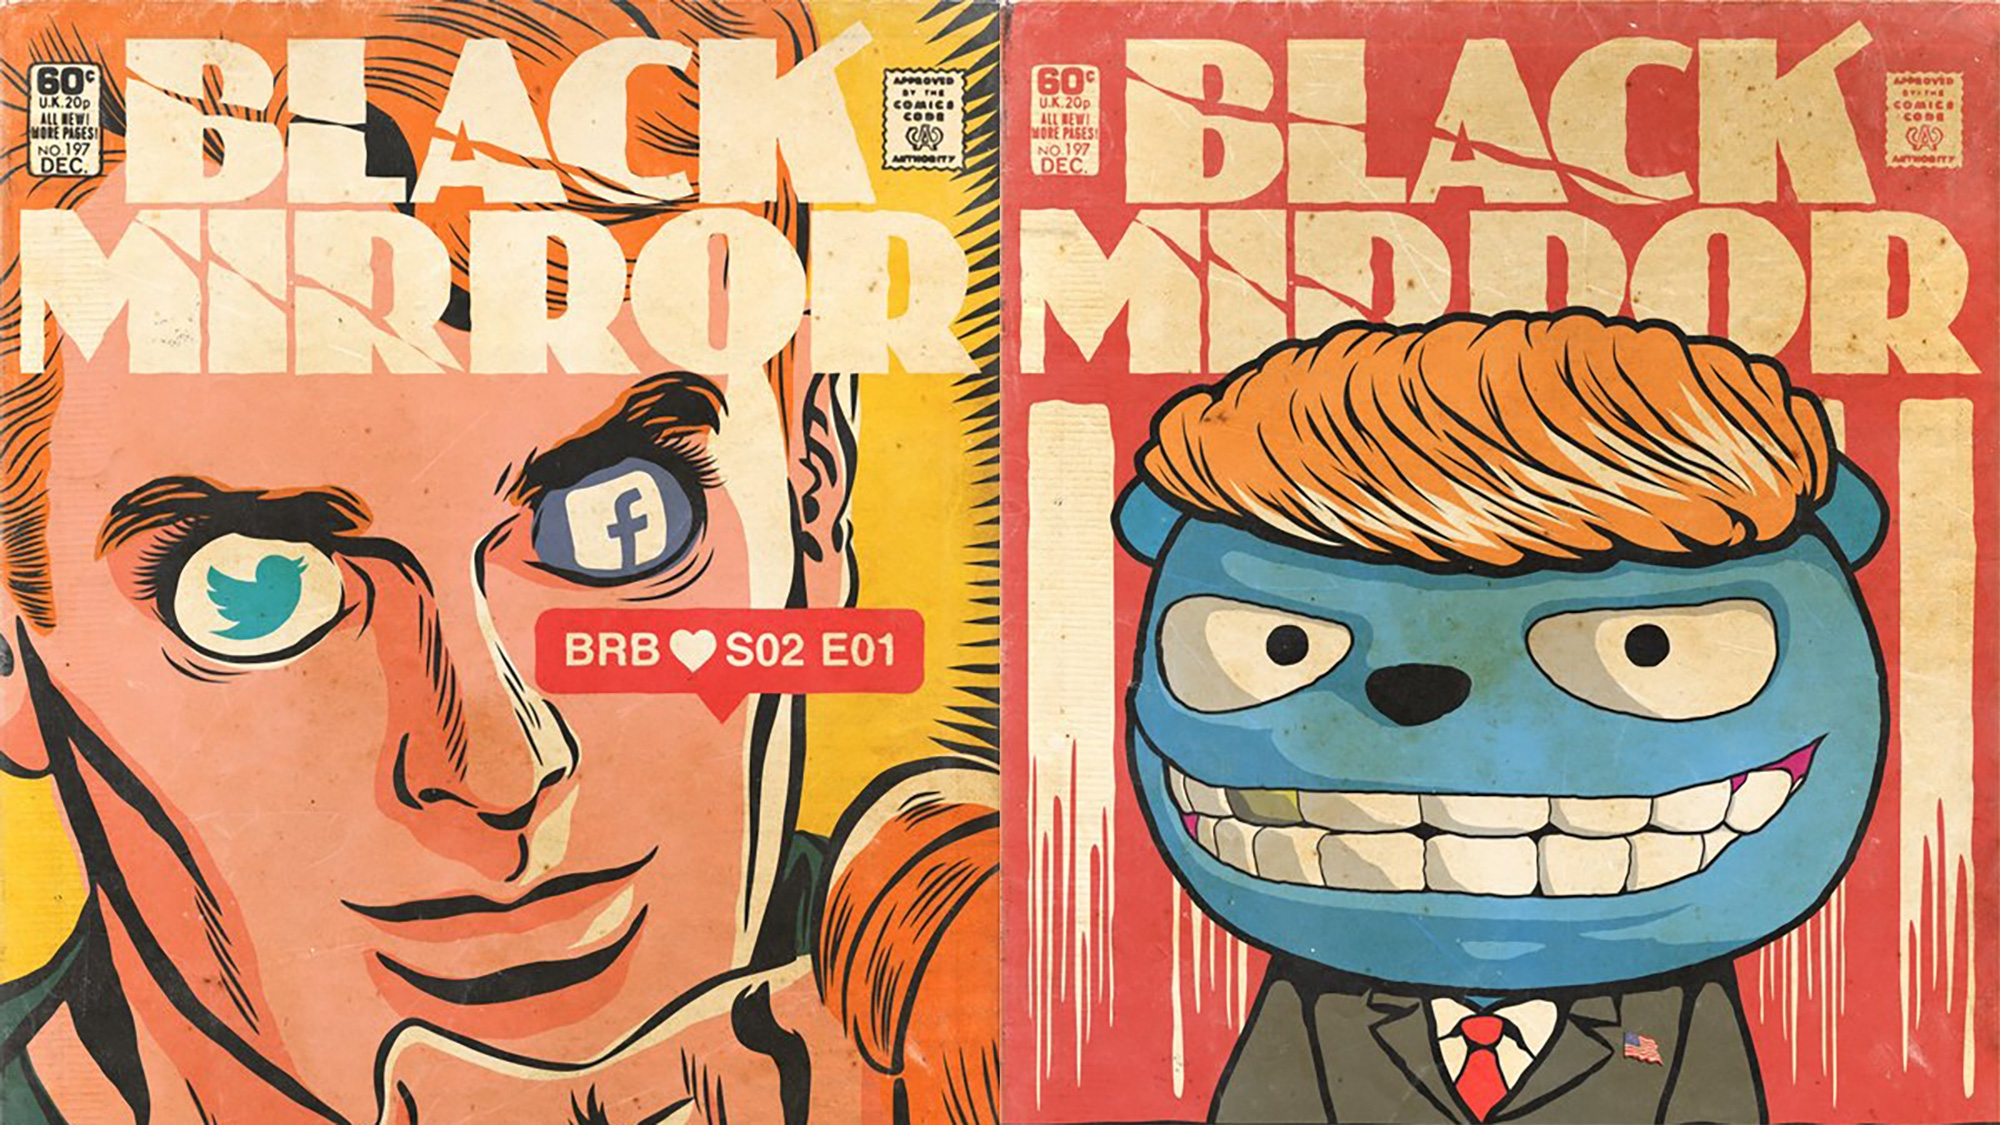 More Black Mirror Episodes Turned Into Golden Age Comic